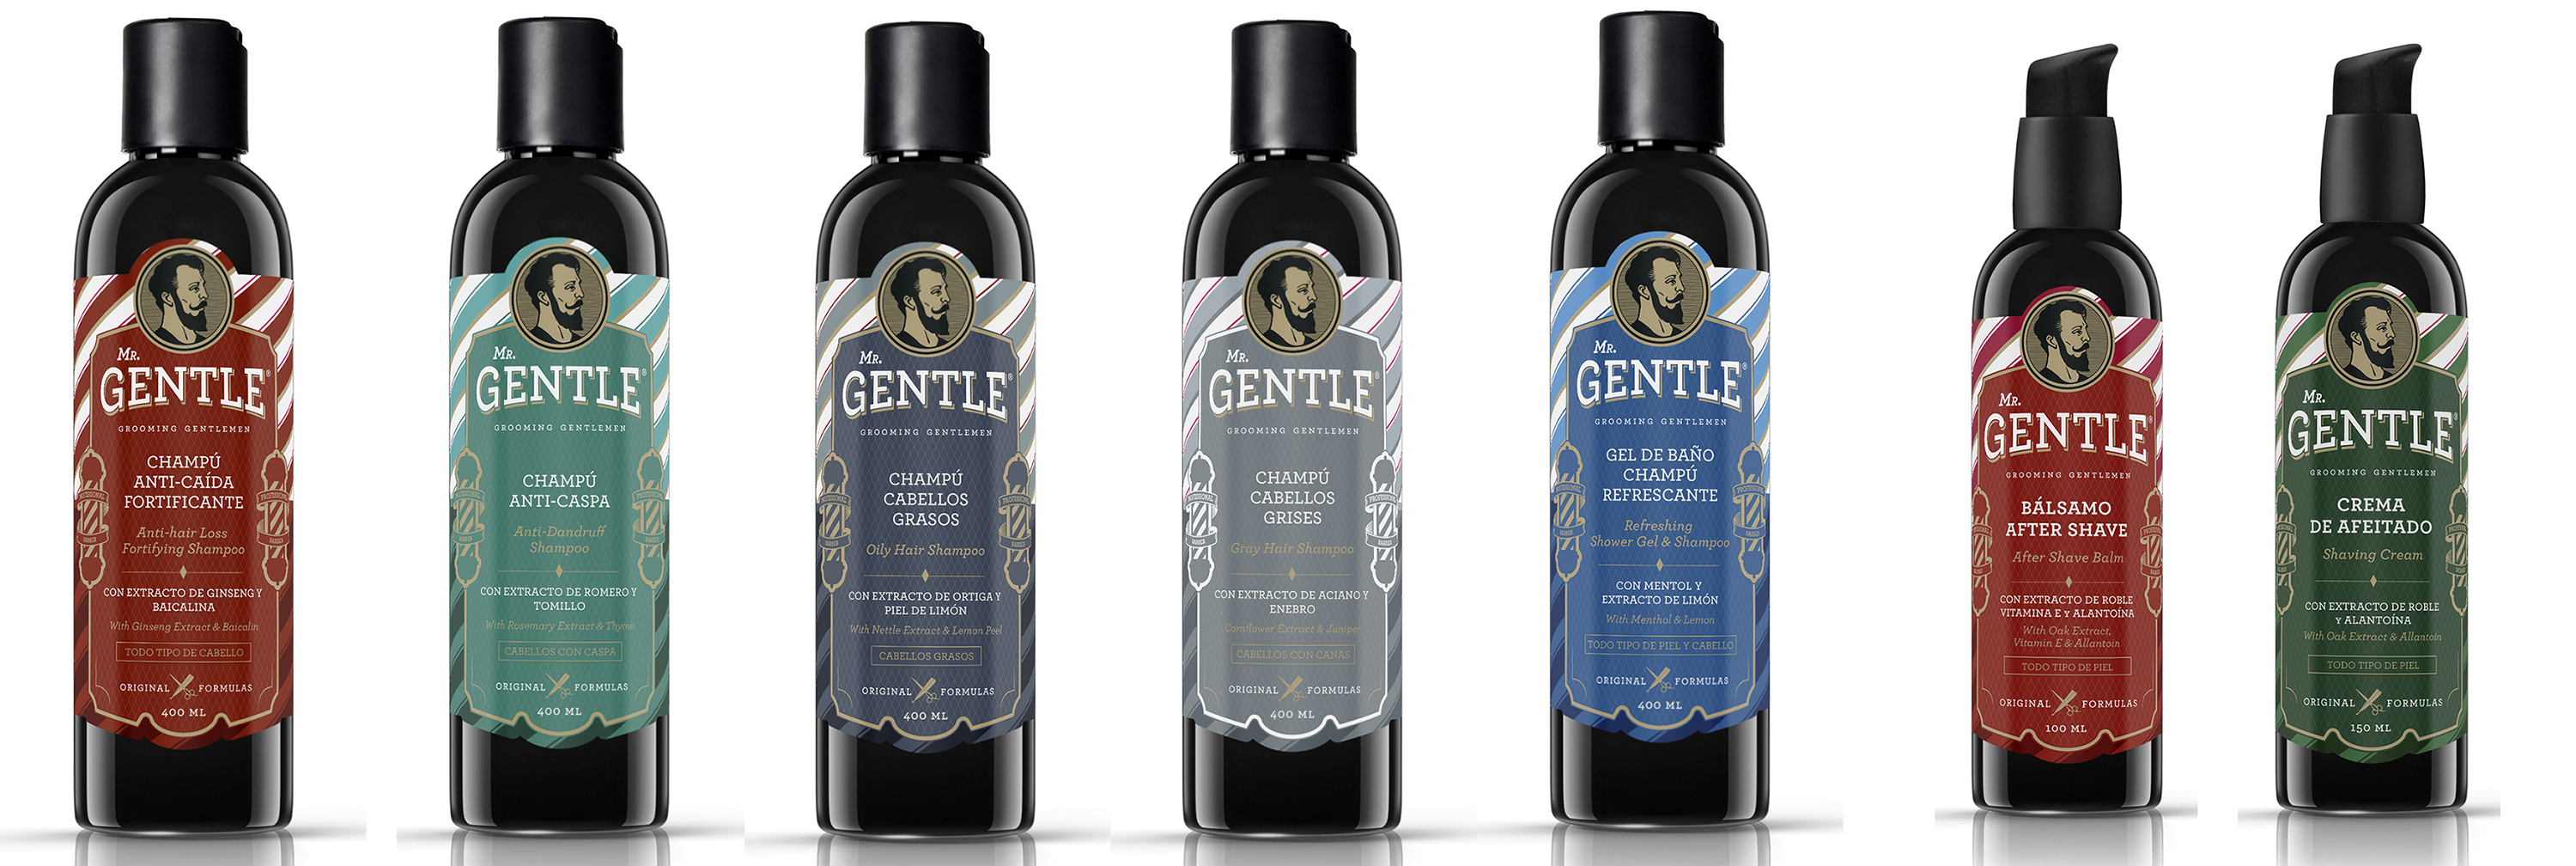 Линия для мужчин Mr.Gentle Grooming Gentlemen от La Cabine